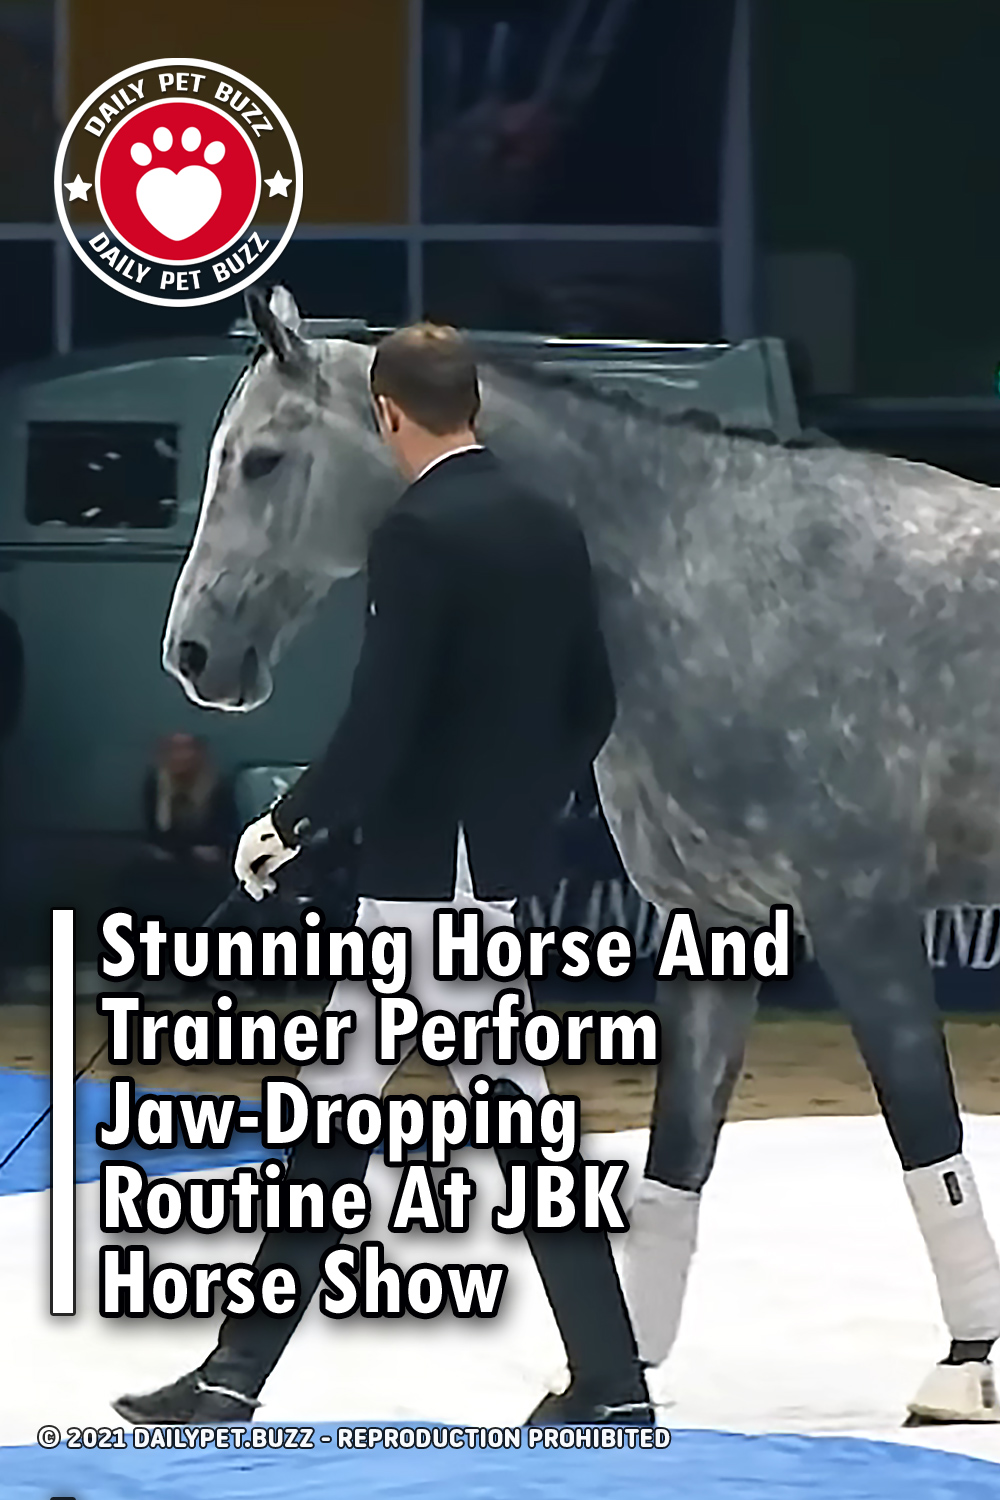 Stunning Horse And Trainer Perform Jaw-Dropping Routine At JBK Horse Show